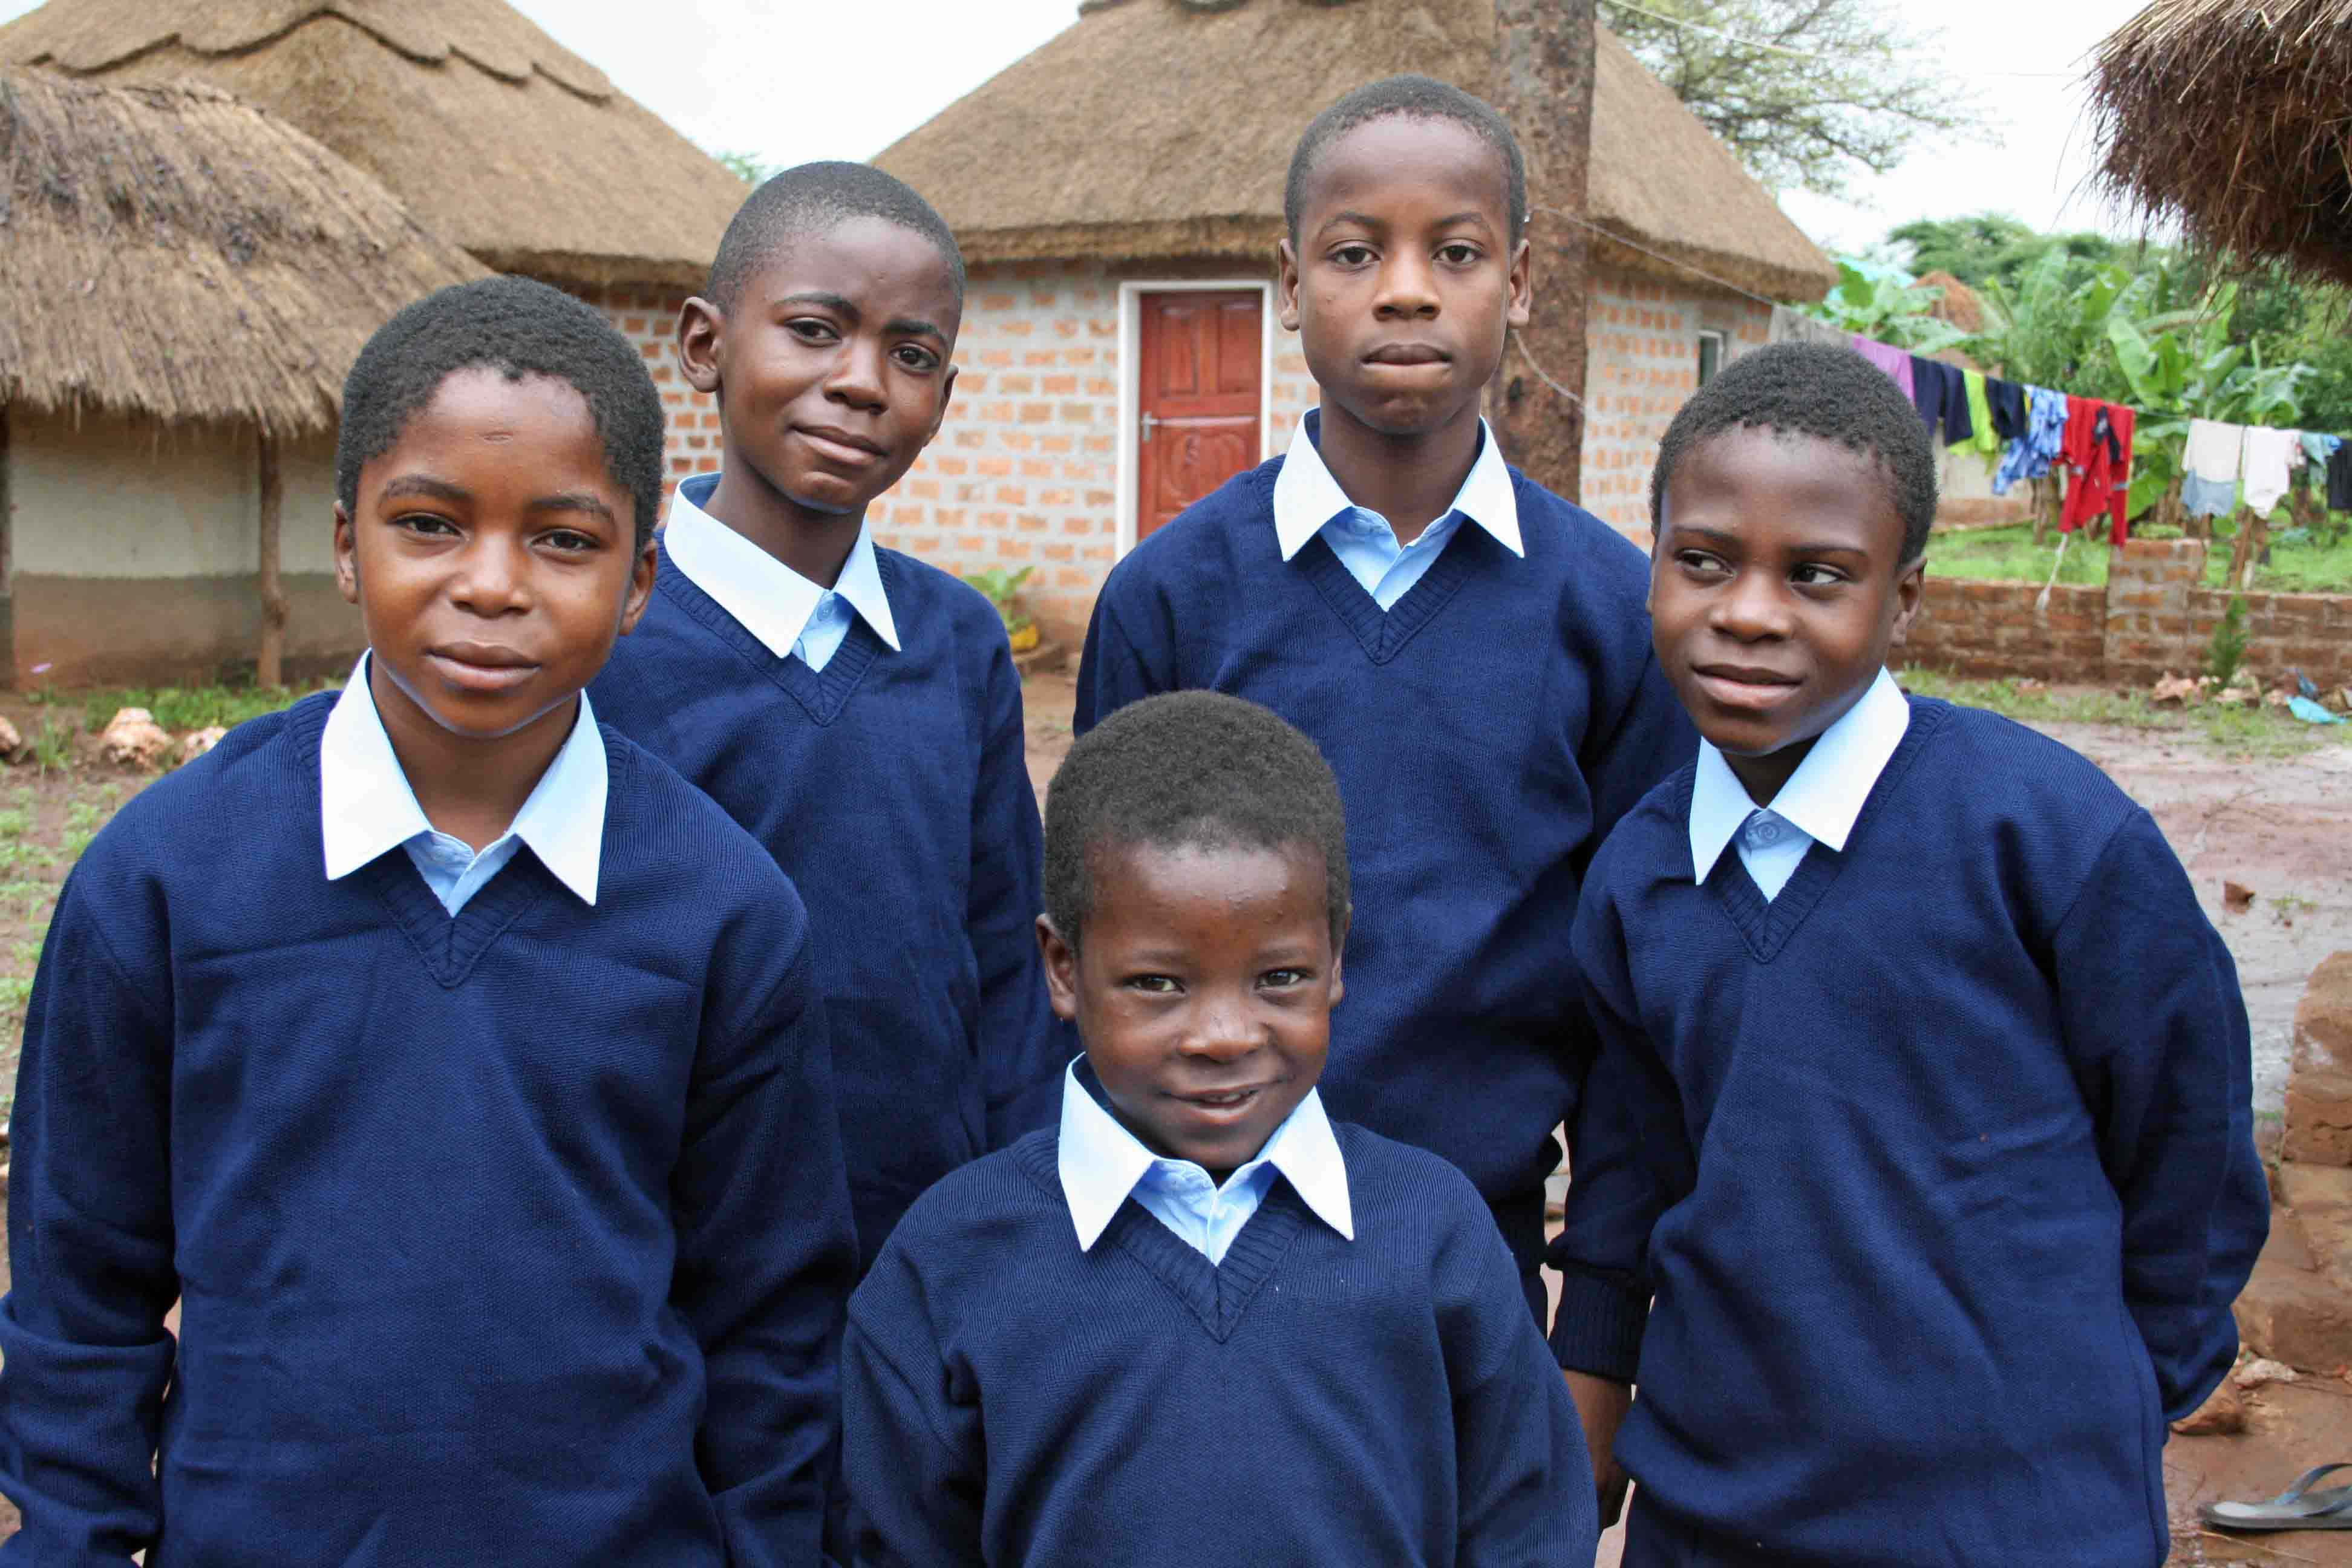 An_Orphanage_in_Zambia_and_Young_Dalisos_Story3_2